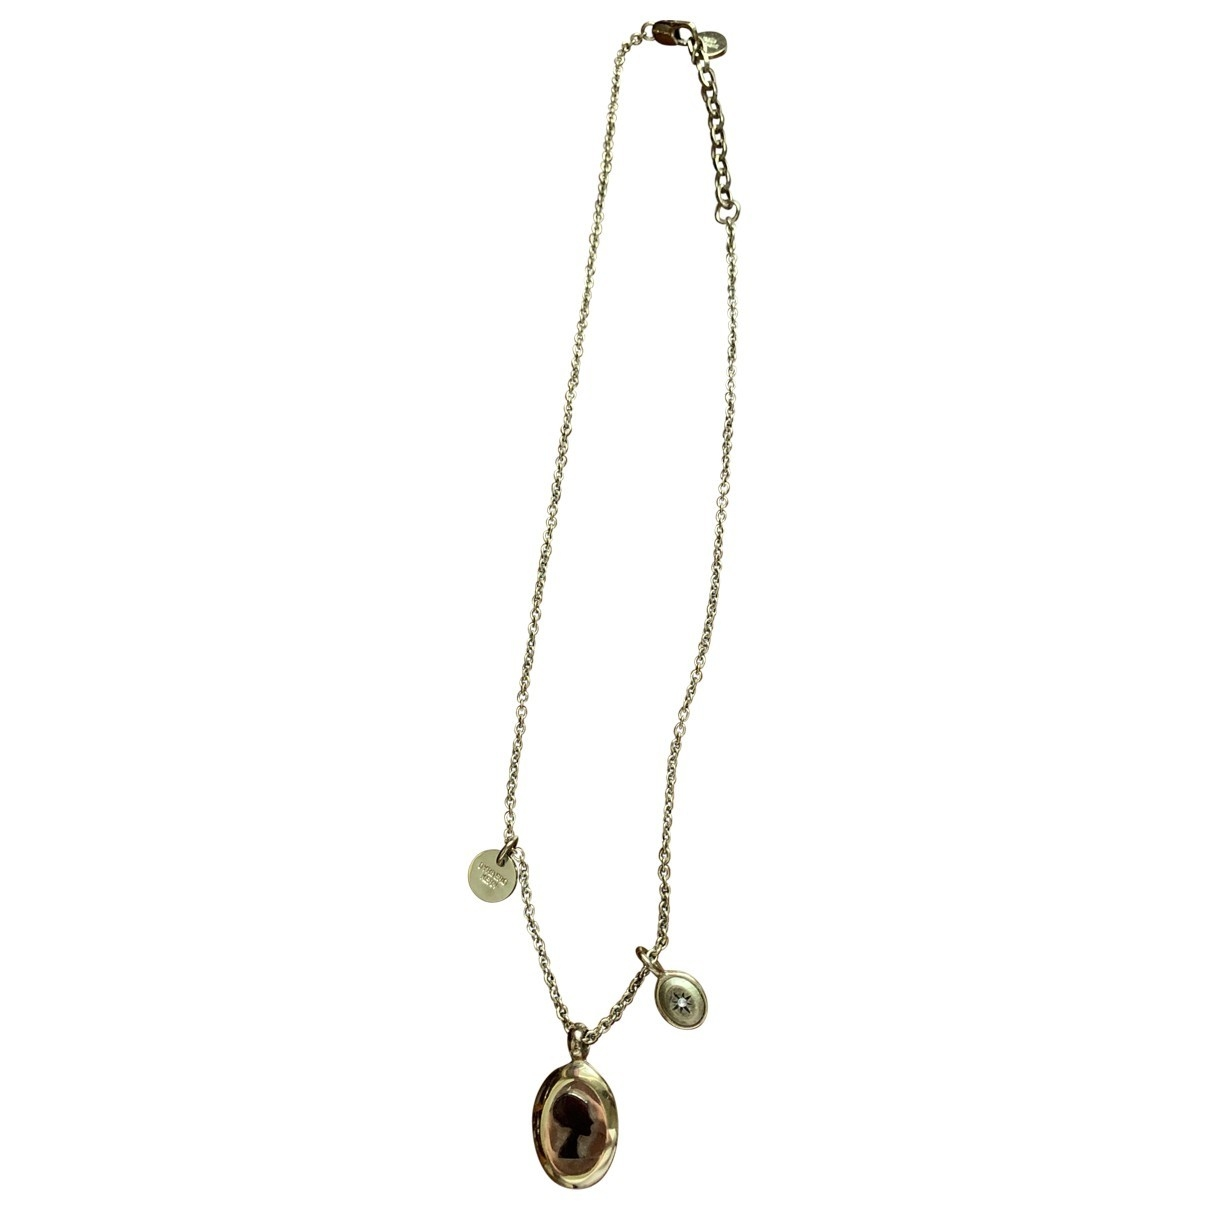 Dyrberg/kern \N Gold gold and steel Long necklace for Women \N